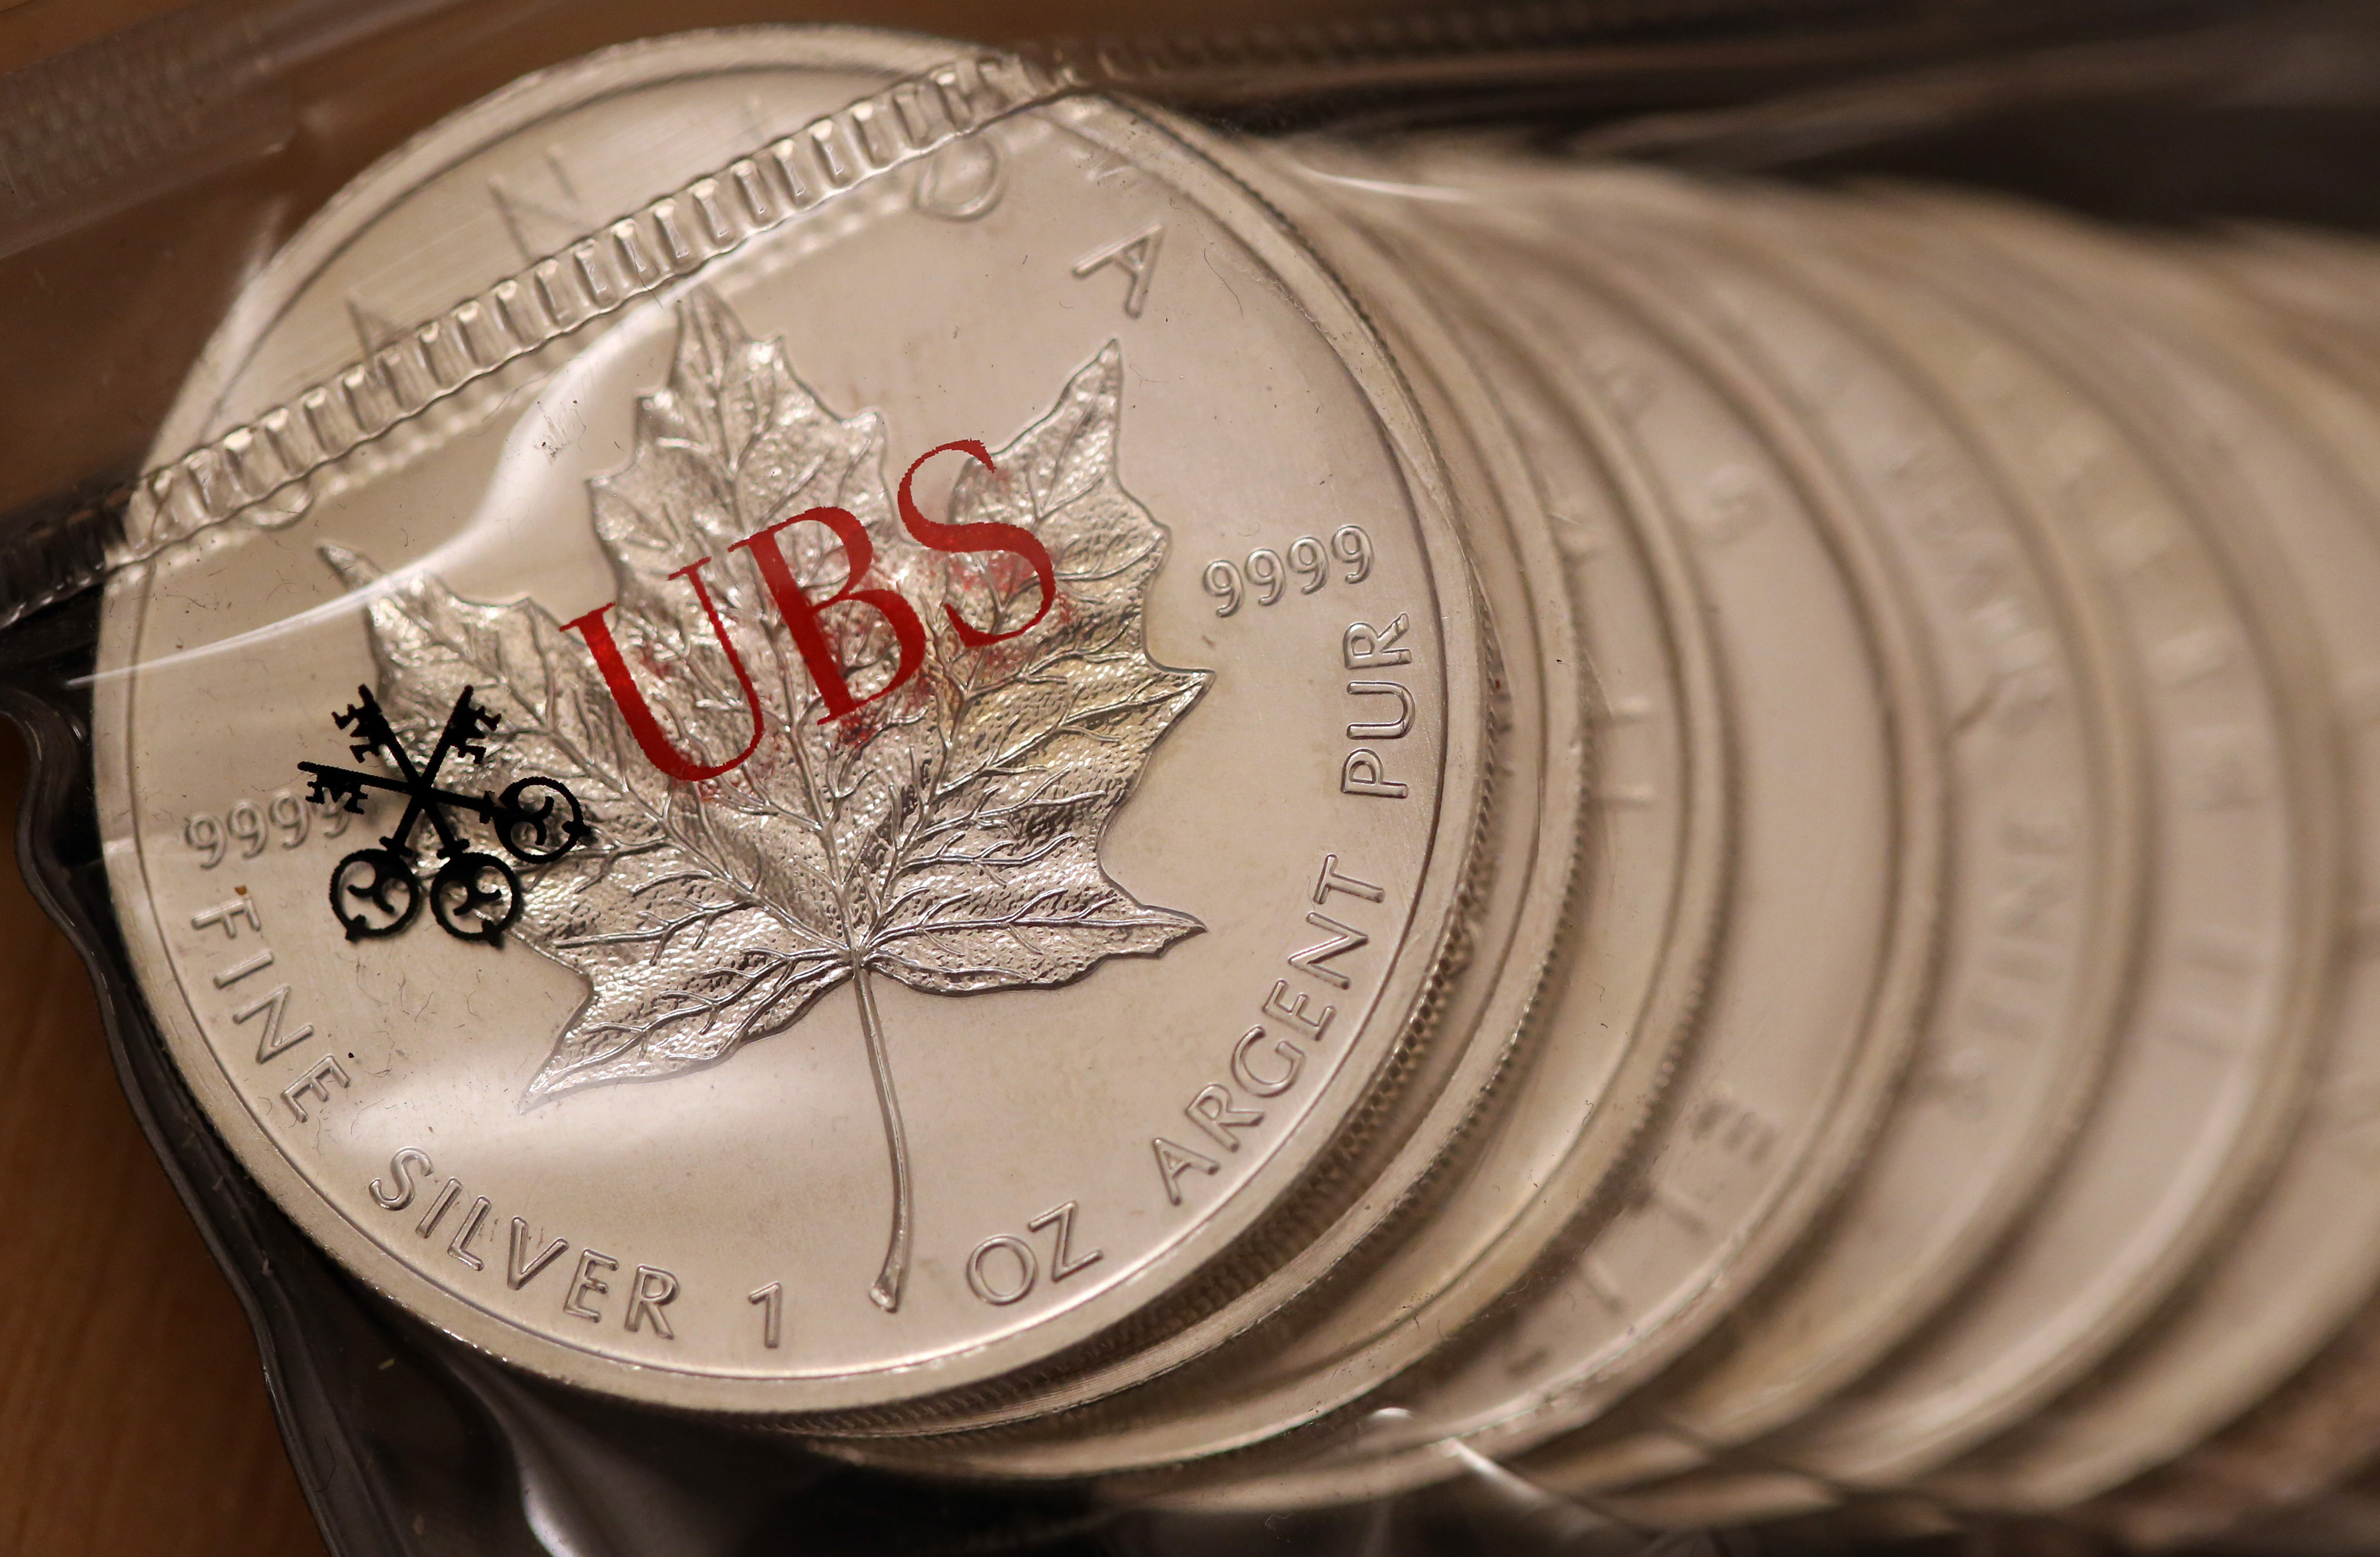 One ounce silver coins sit stored inside a UBS branded plastic bag in London.